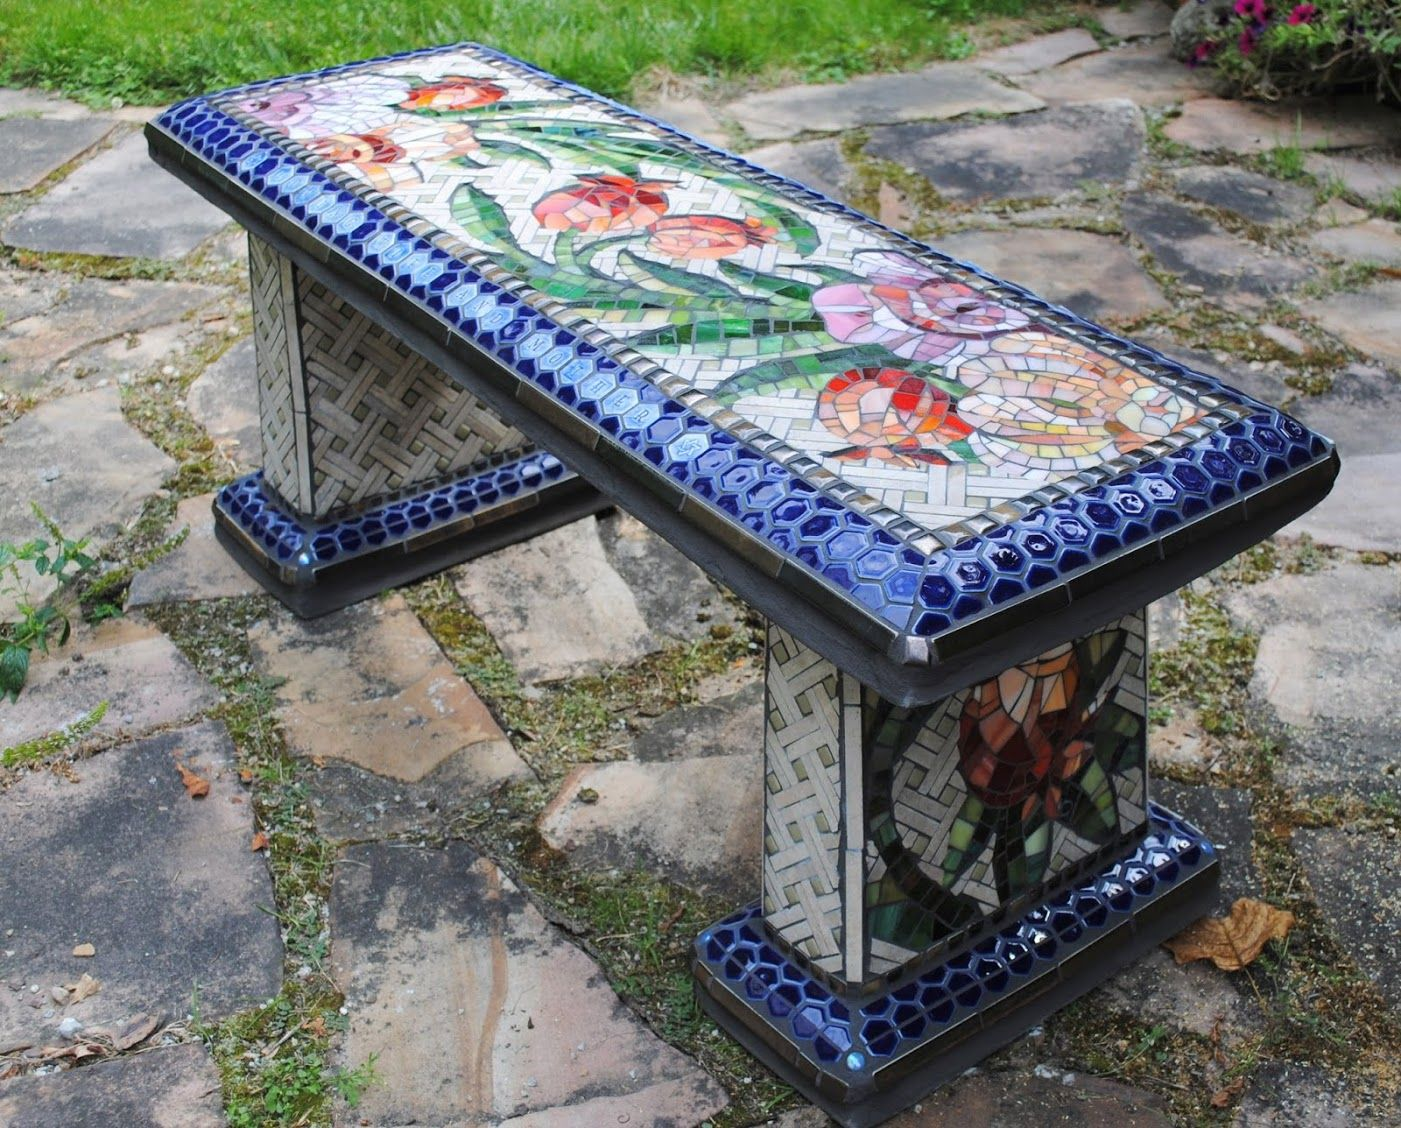 Garden Furniture Mosaic mosaic garden benches - beads & pieces | community mosaic board